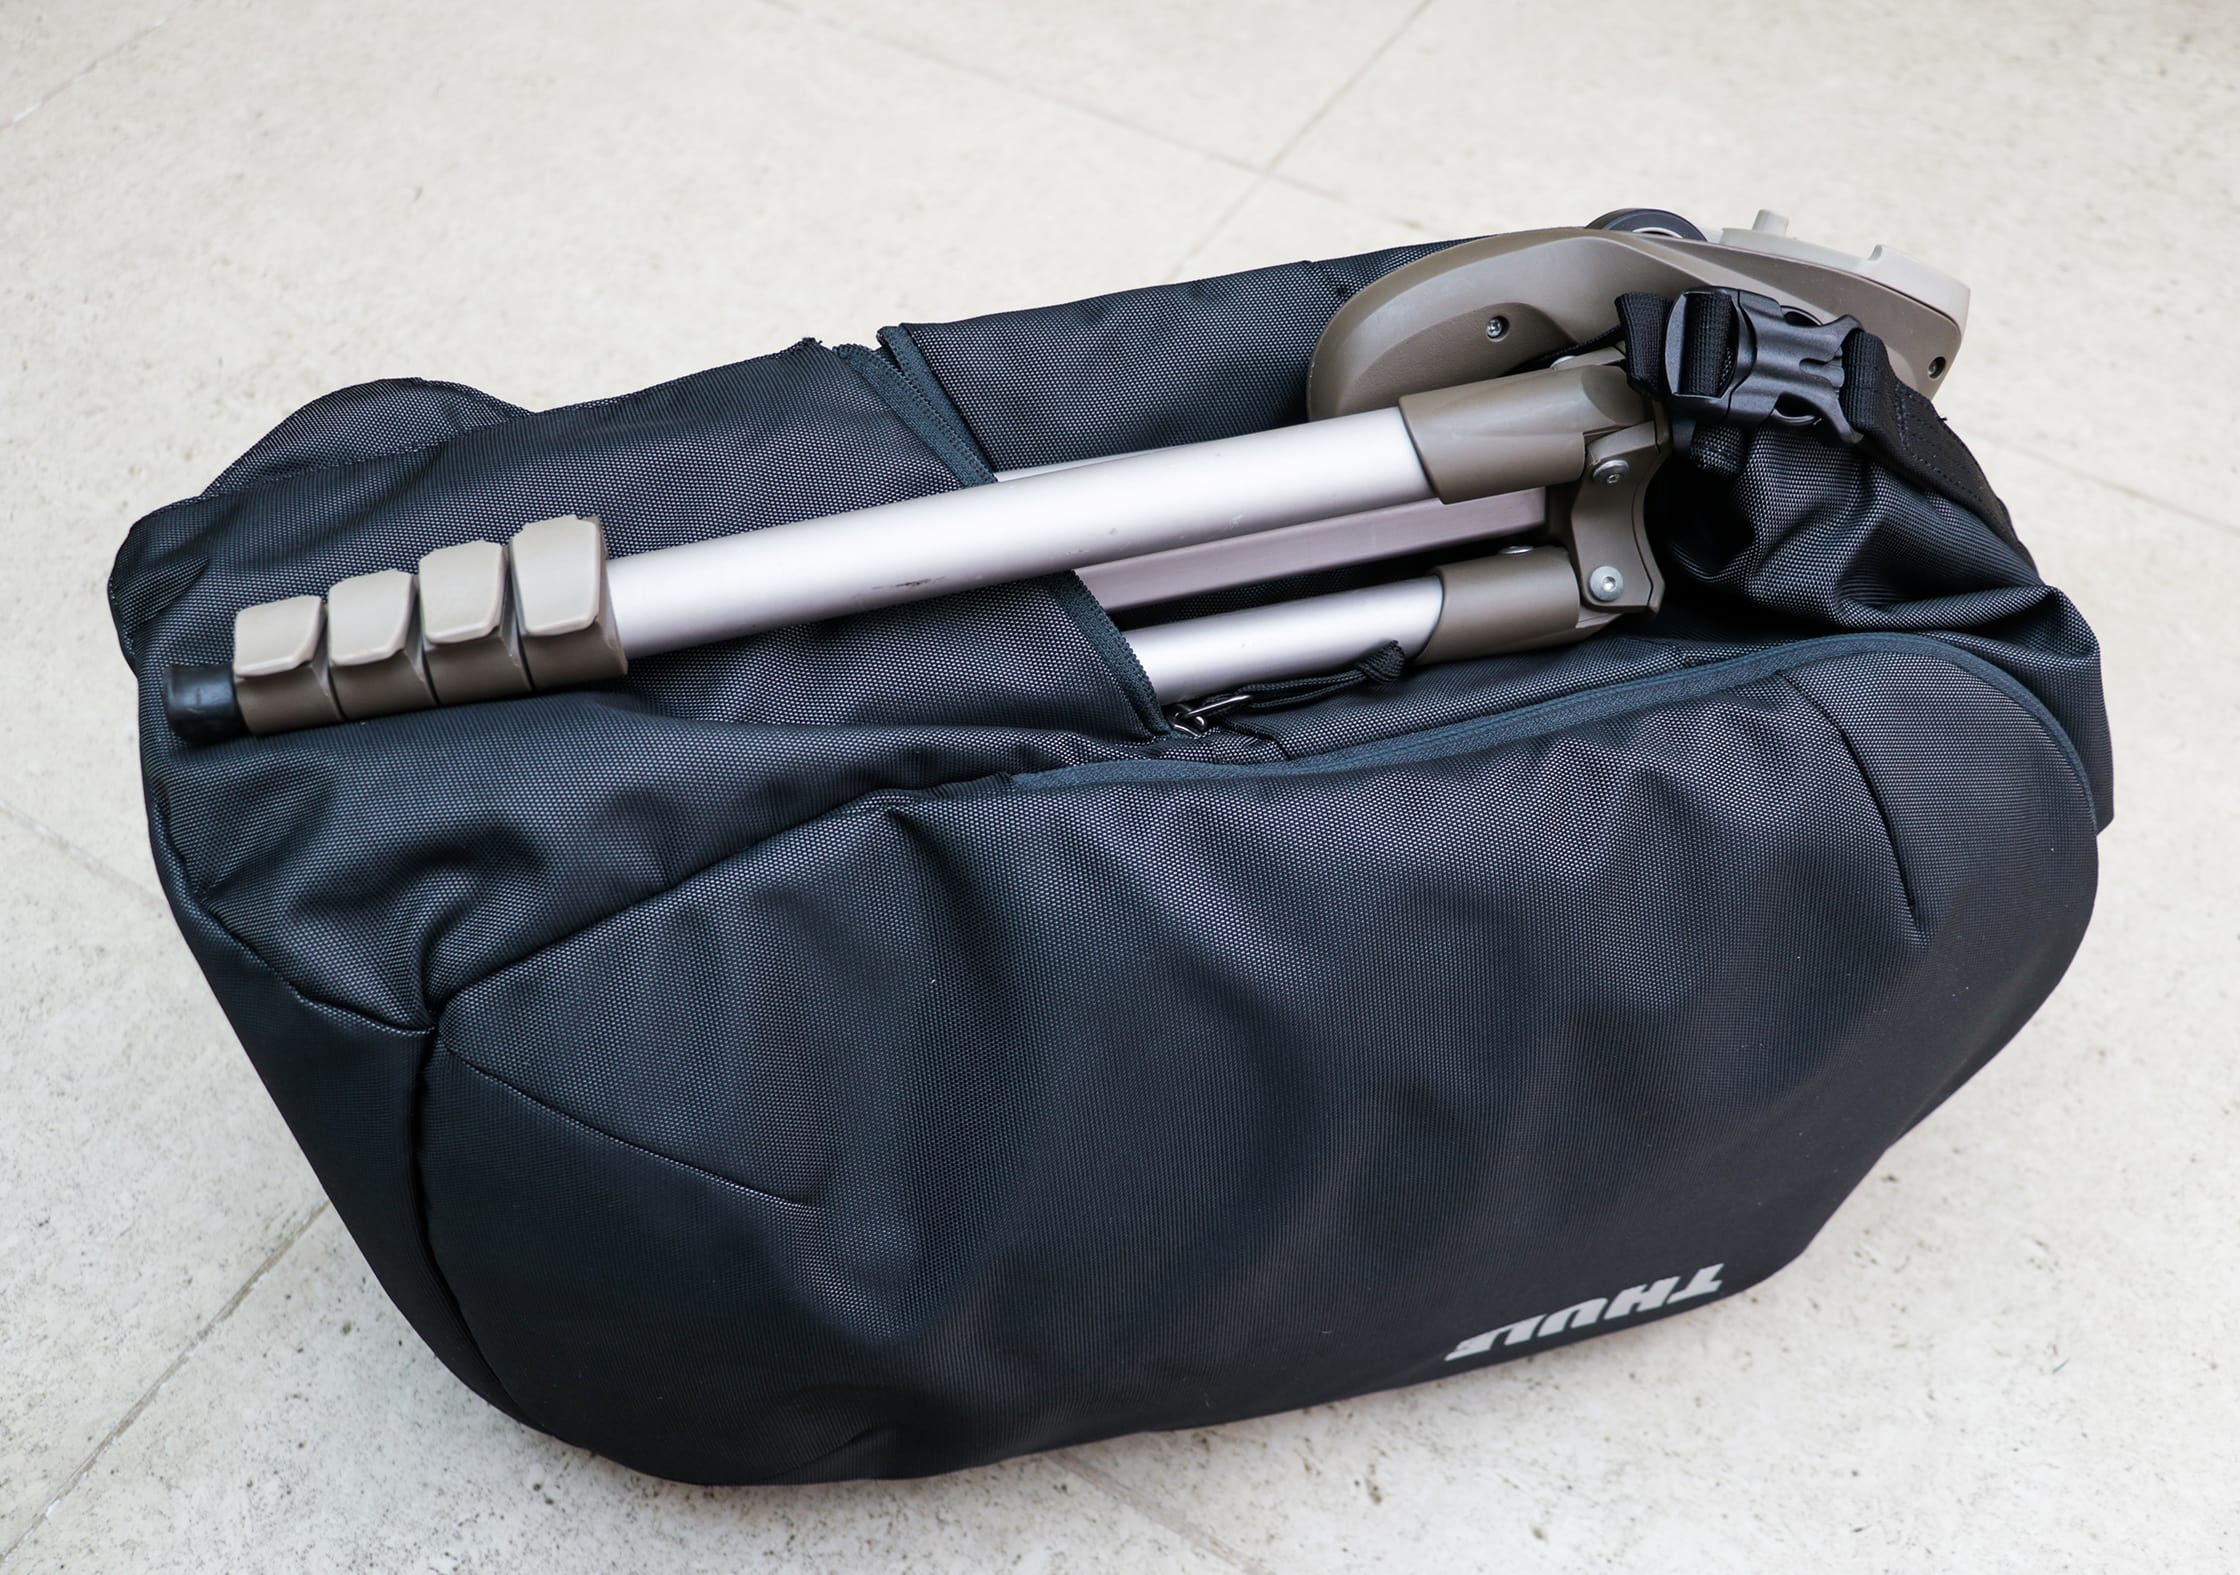 Attaching a Tripod to the Thule Subterra 34L